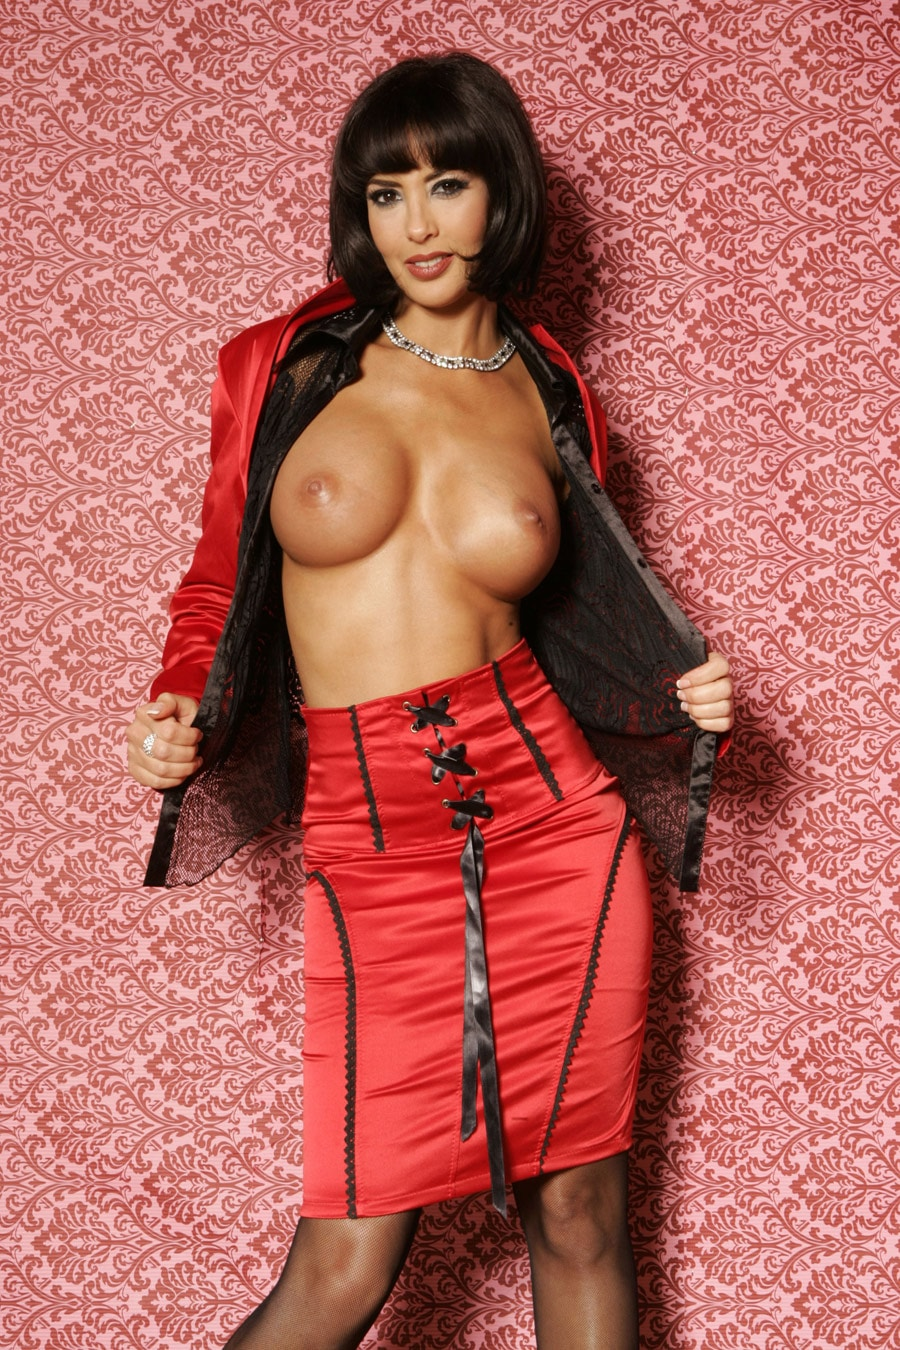 yasmine-pute-frange-lingerie-rouge-provocante-4